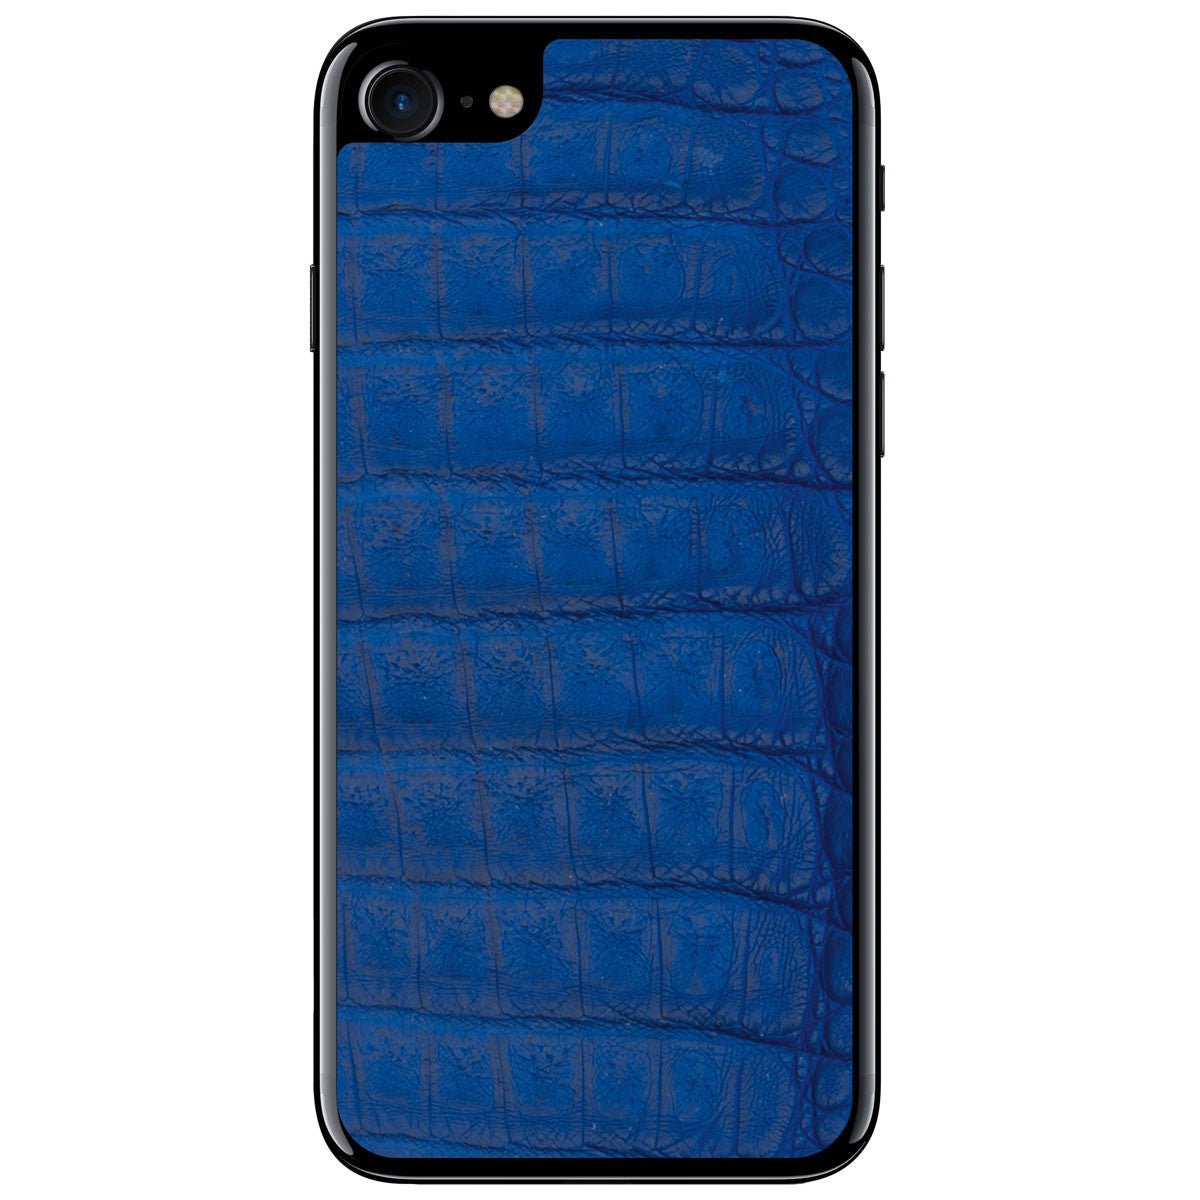 Cobalt Crocodile iPhone 7 Leather Skin